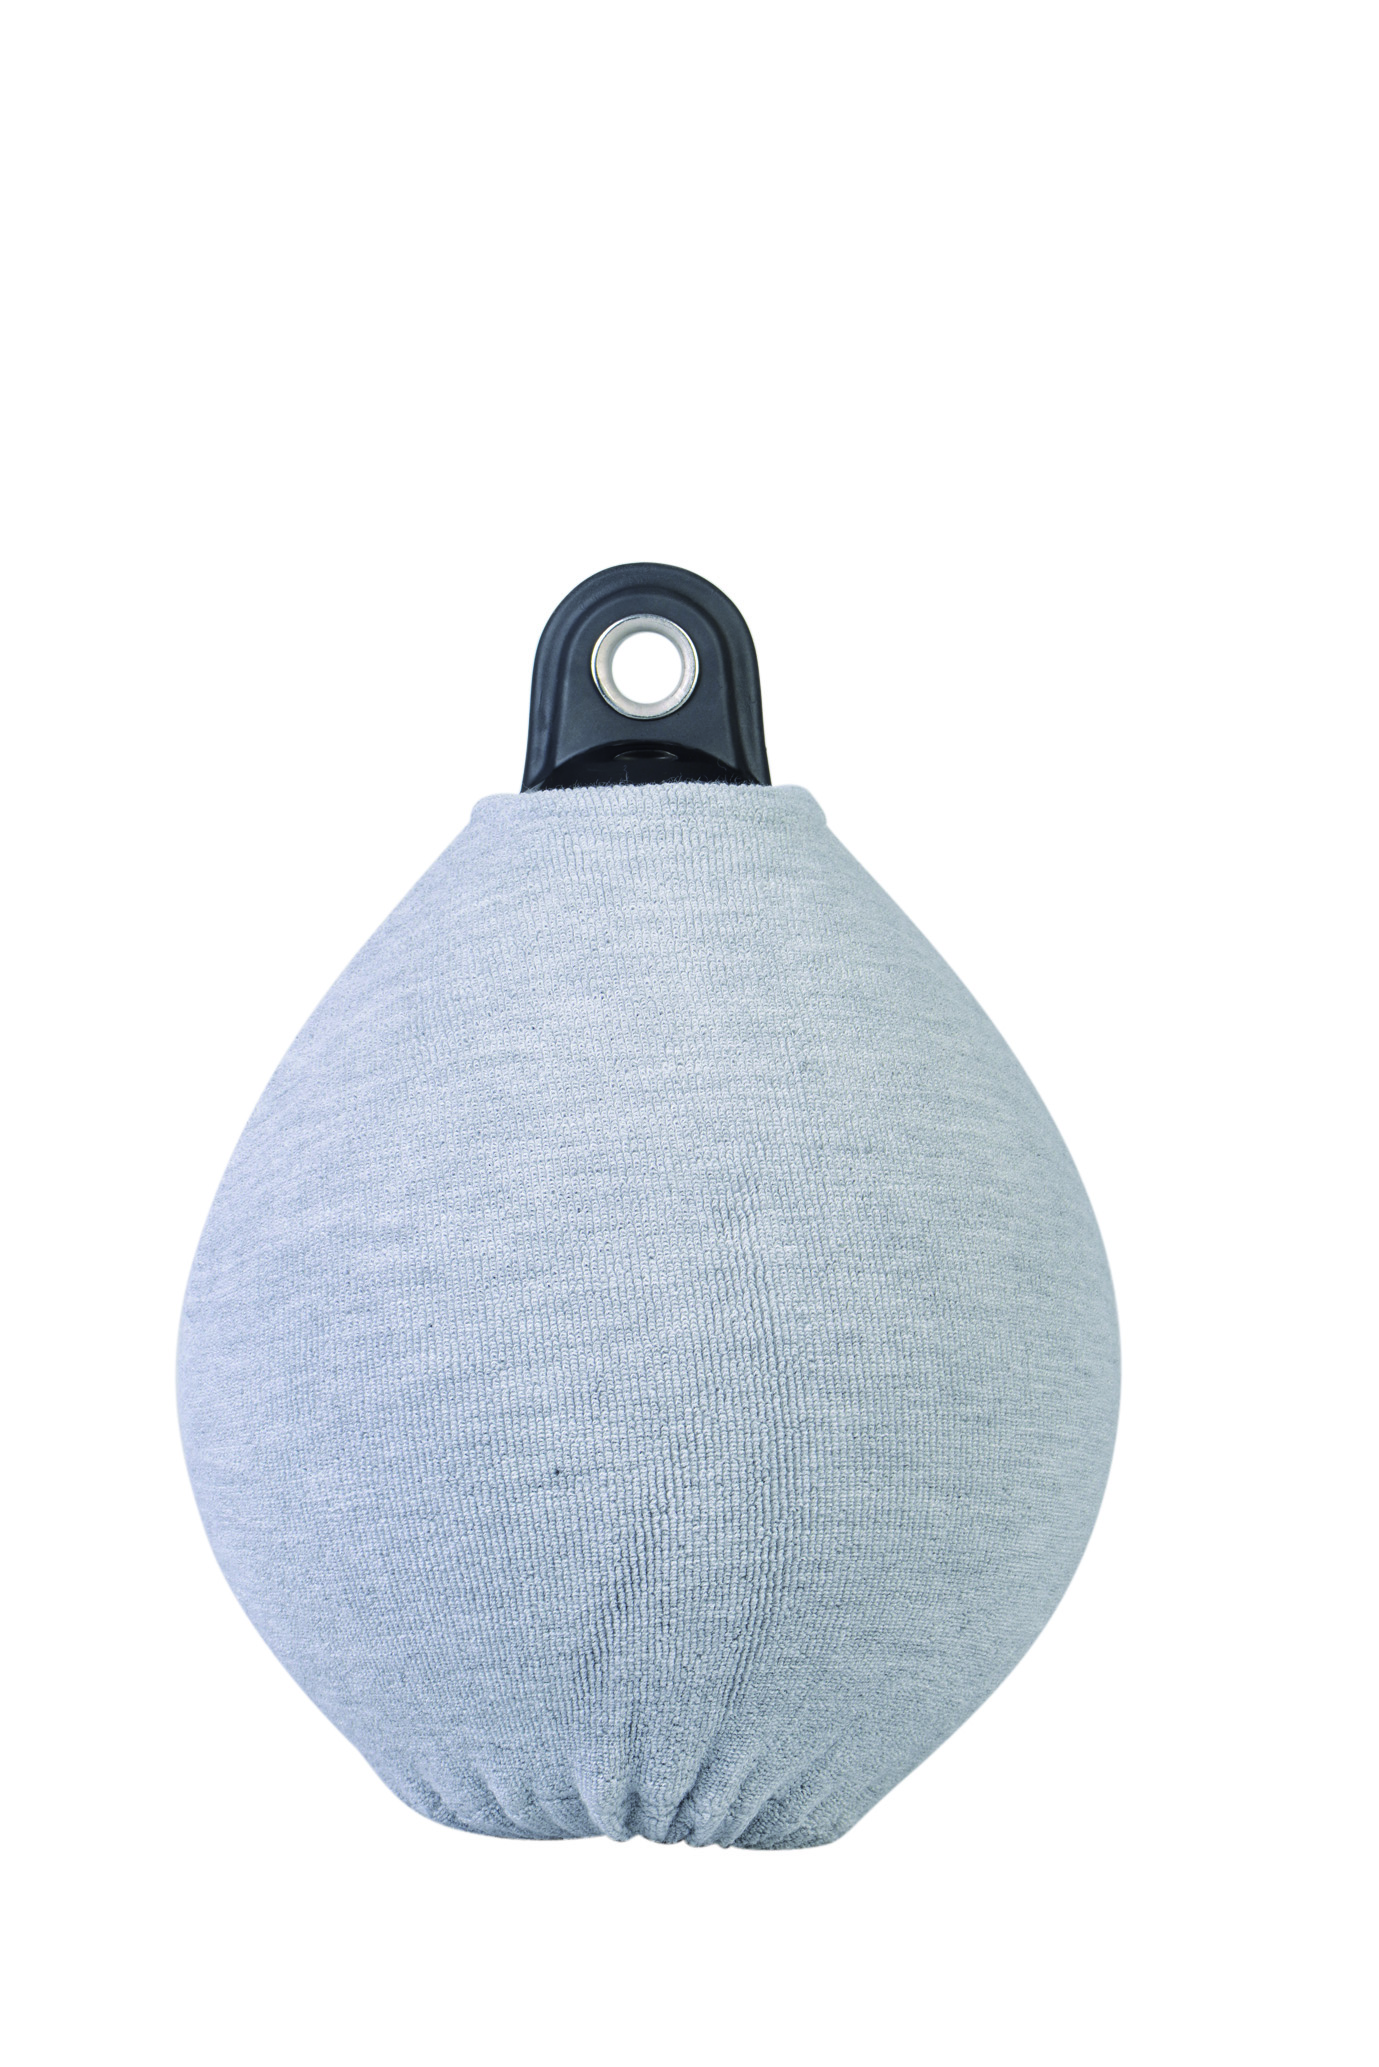 Talamex Buoy Cover 55 Grey